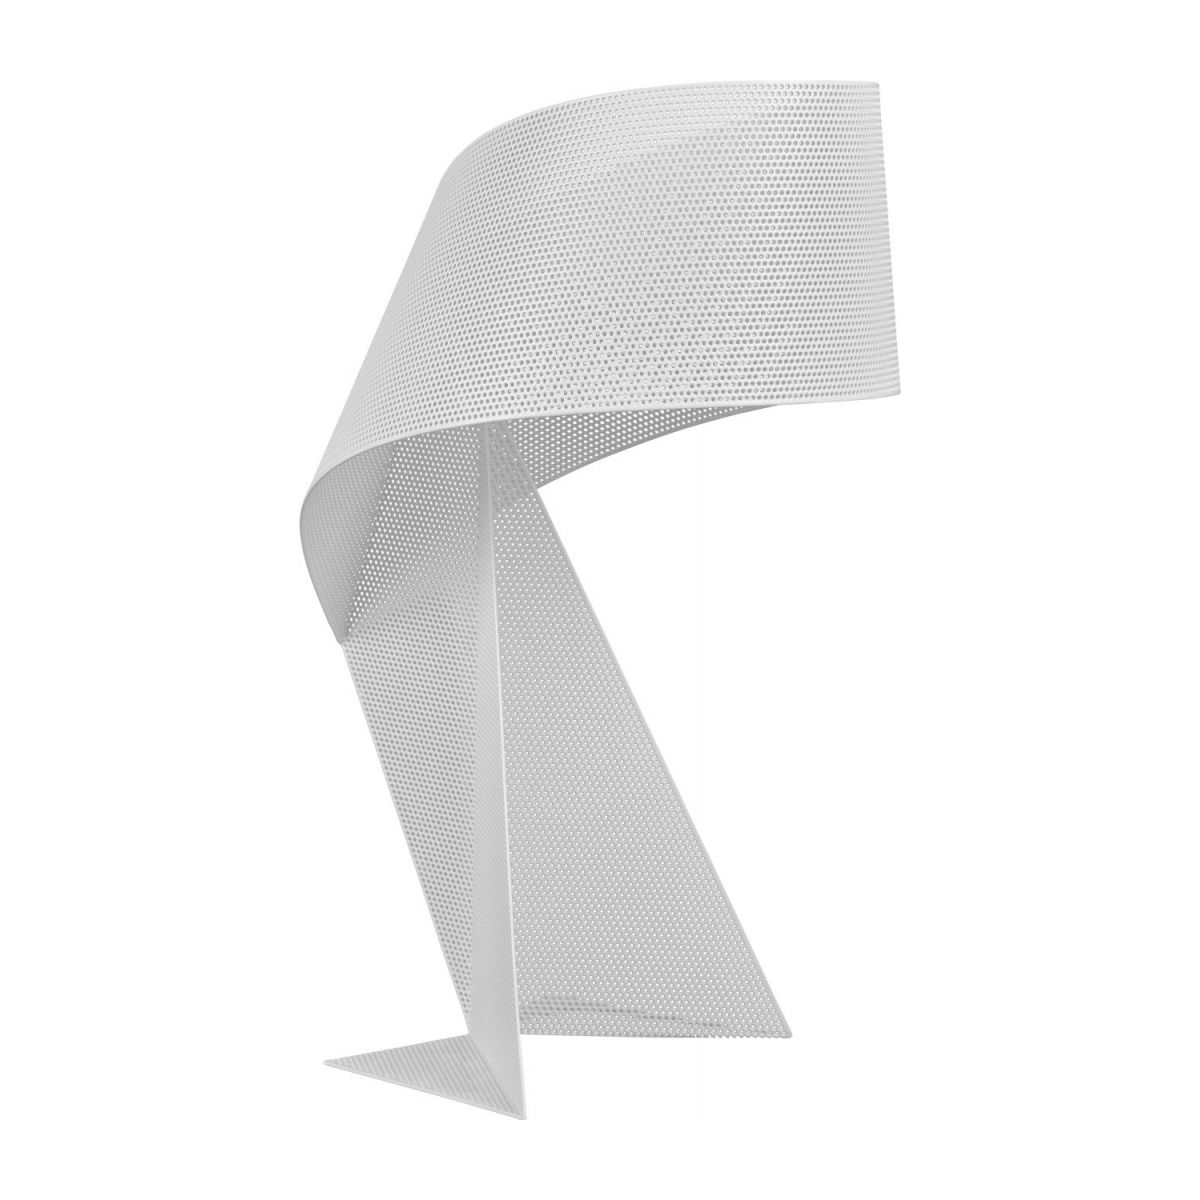 Table lamp, perforated n°1